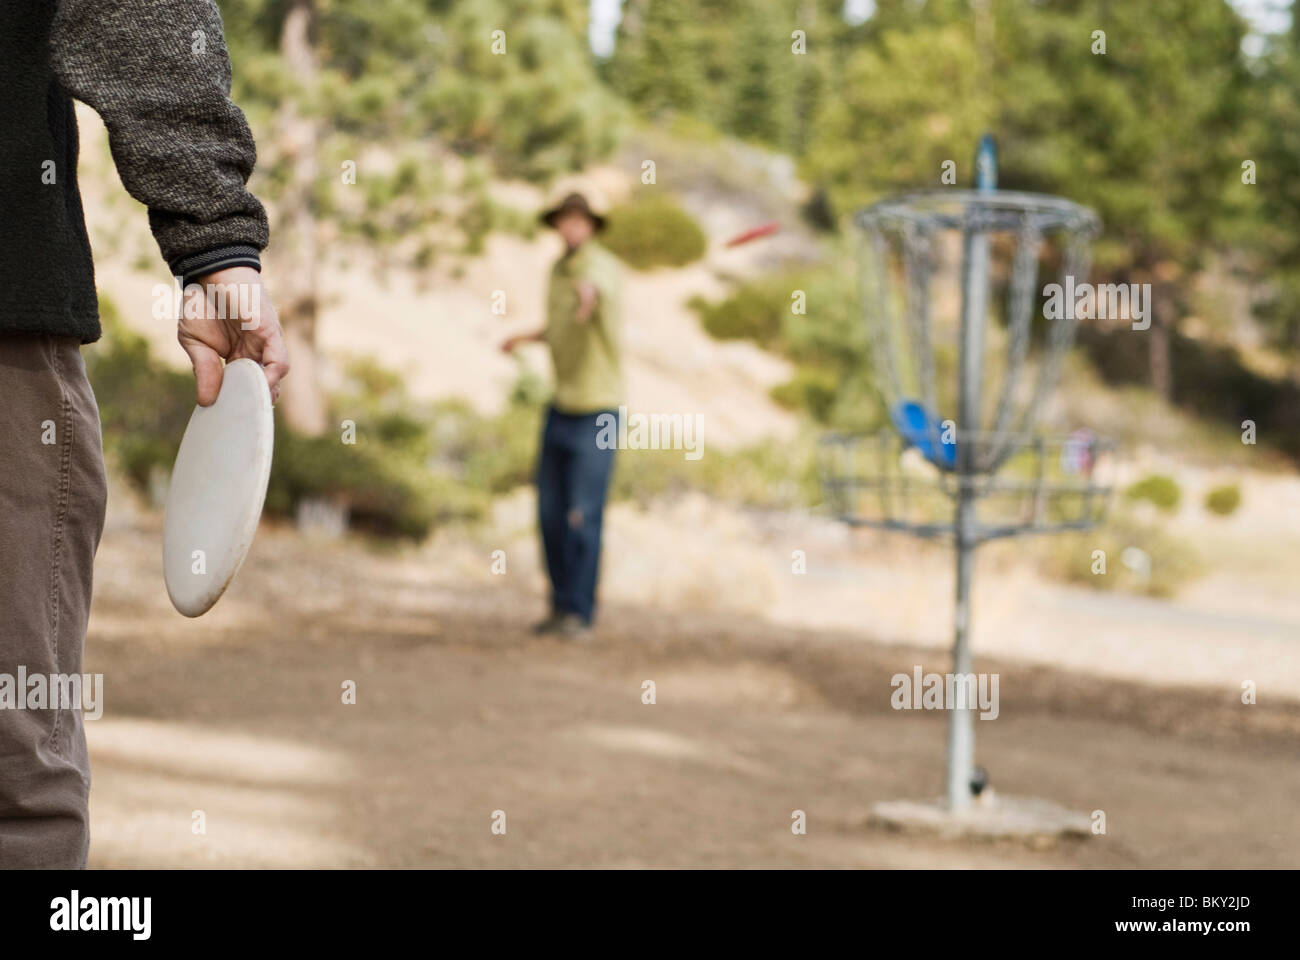 Before playing a game of disc golf, a young man warms up on a practice basket in Lake Tahoe, California. - Stock Image